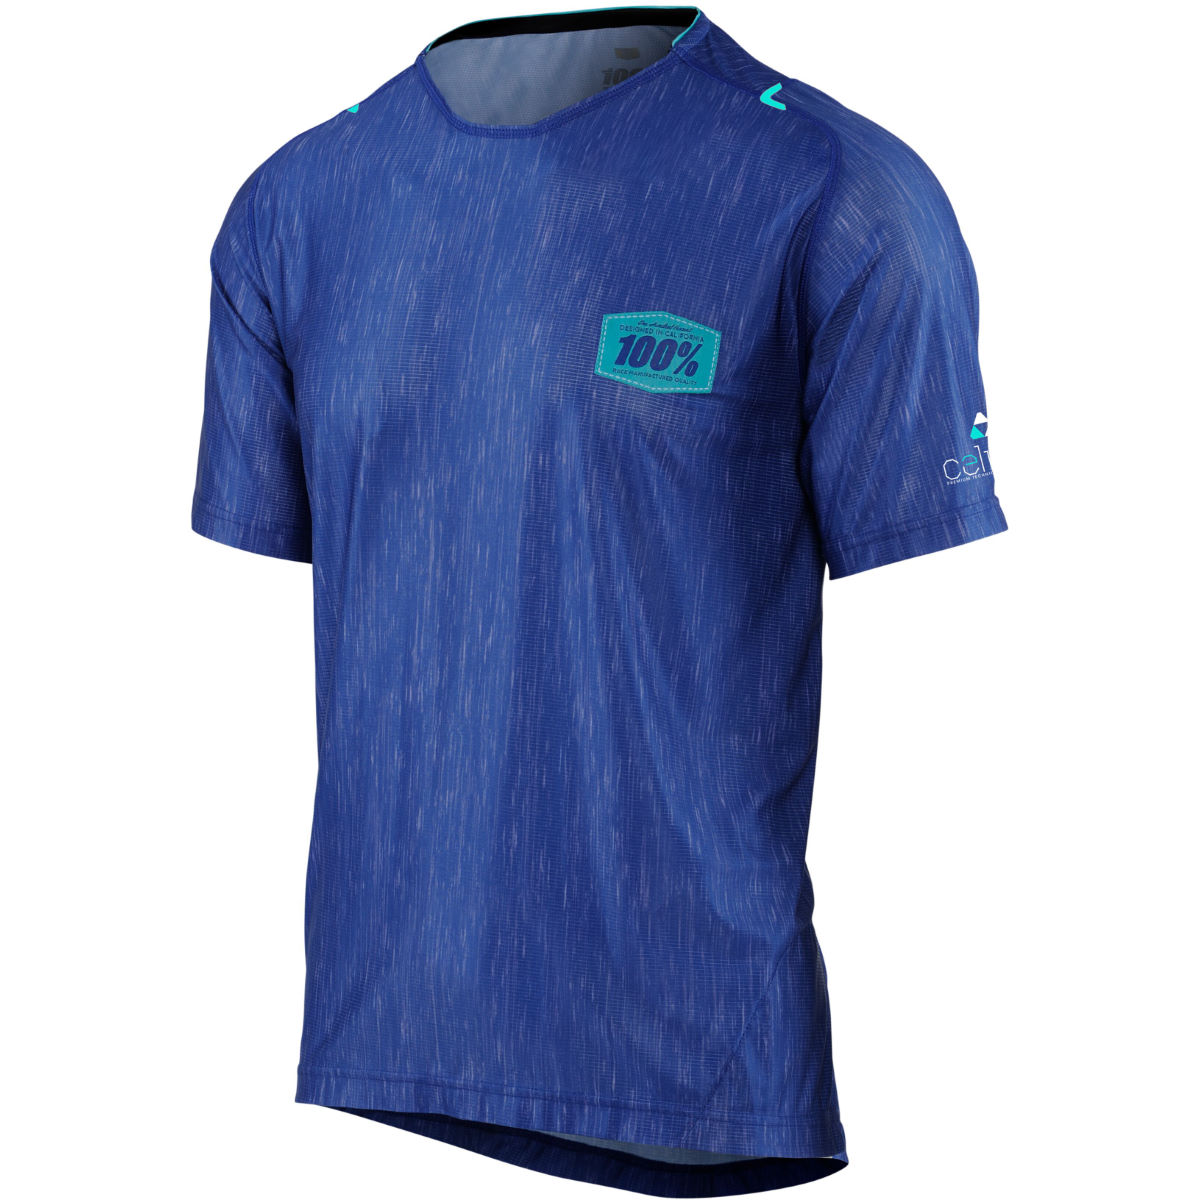 100% Celium Heather Jersey - Maillots